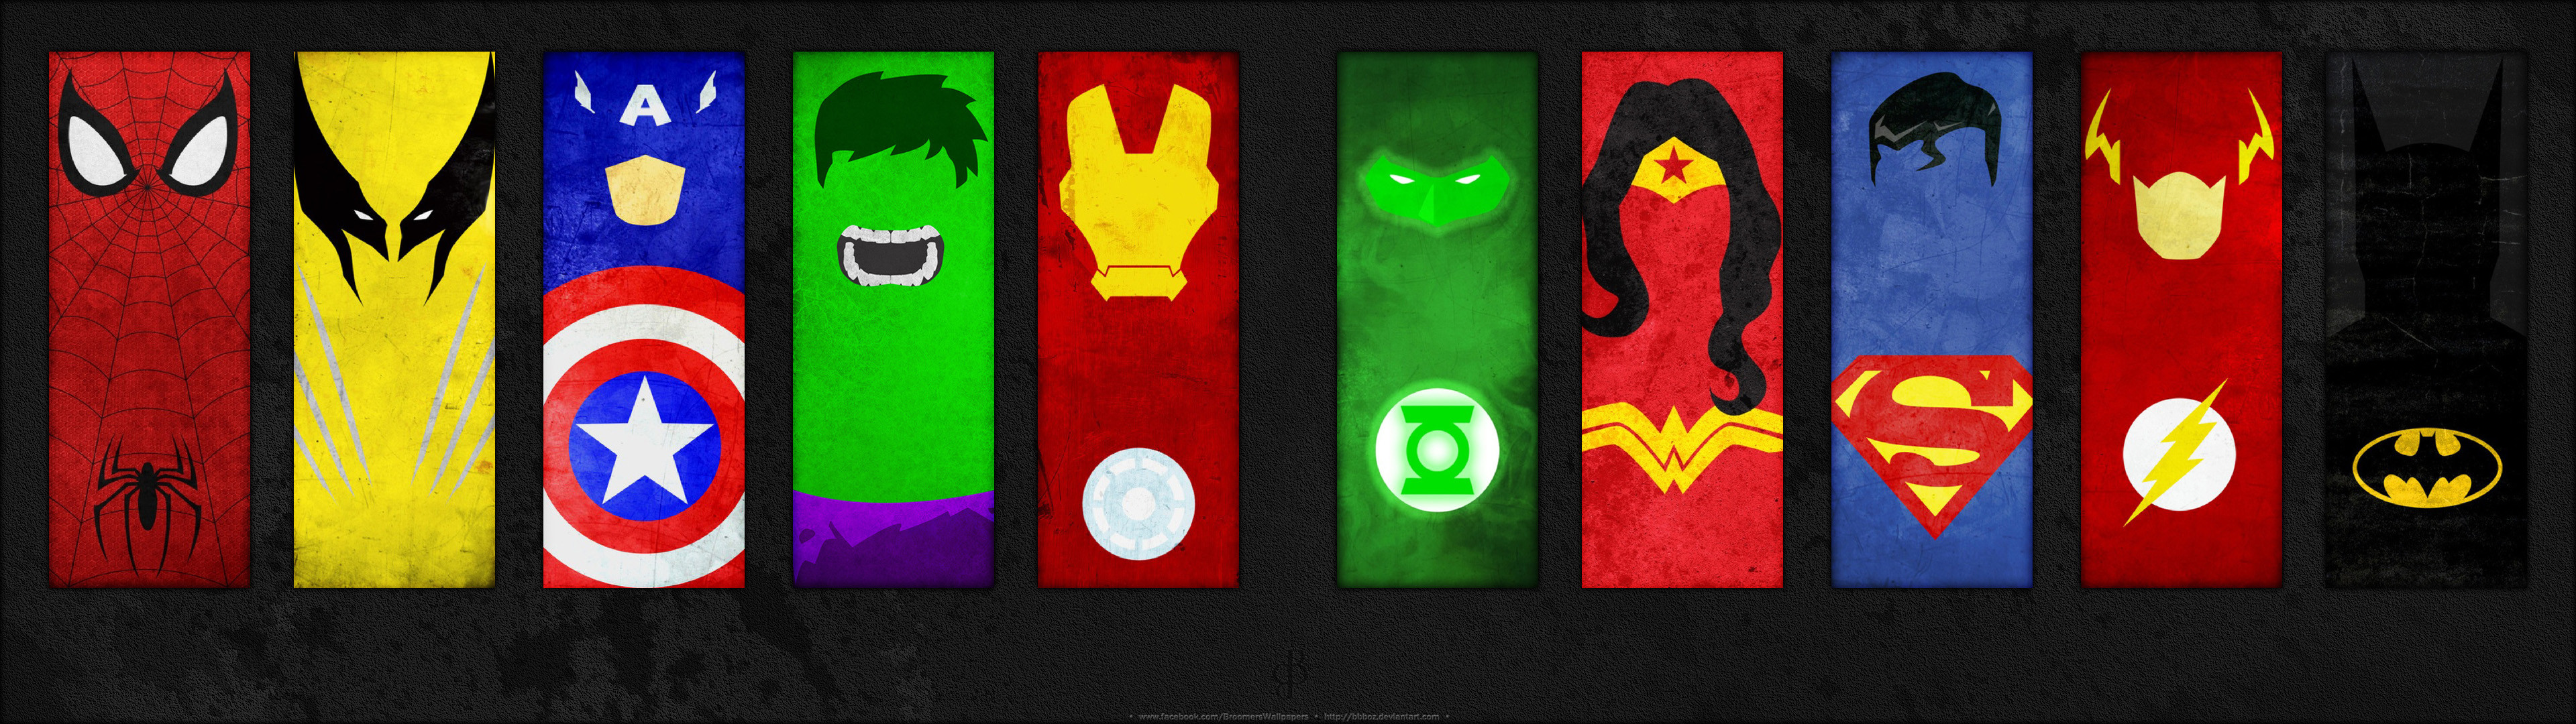 superheroes logos wallpapers 83 background pictures